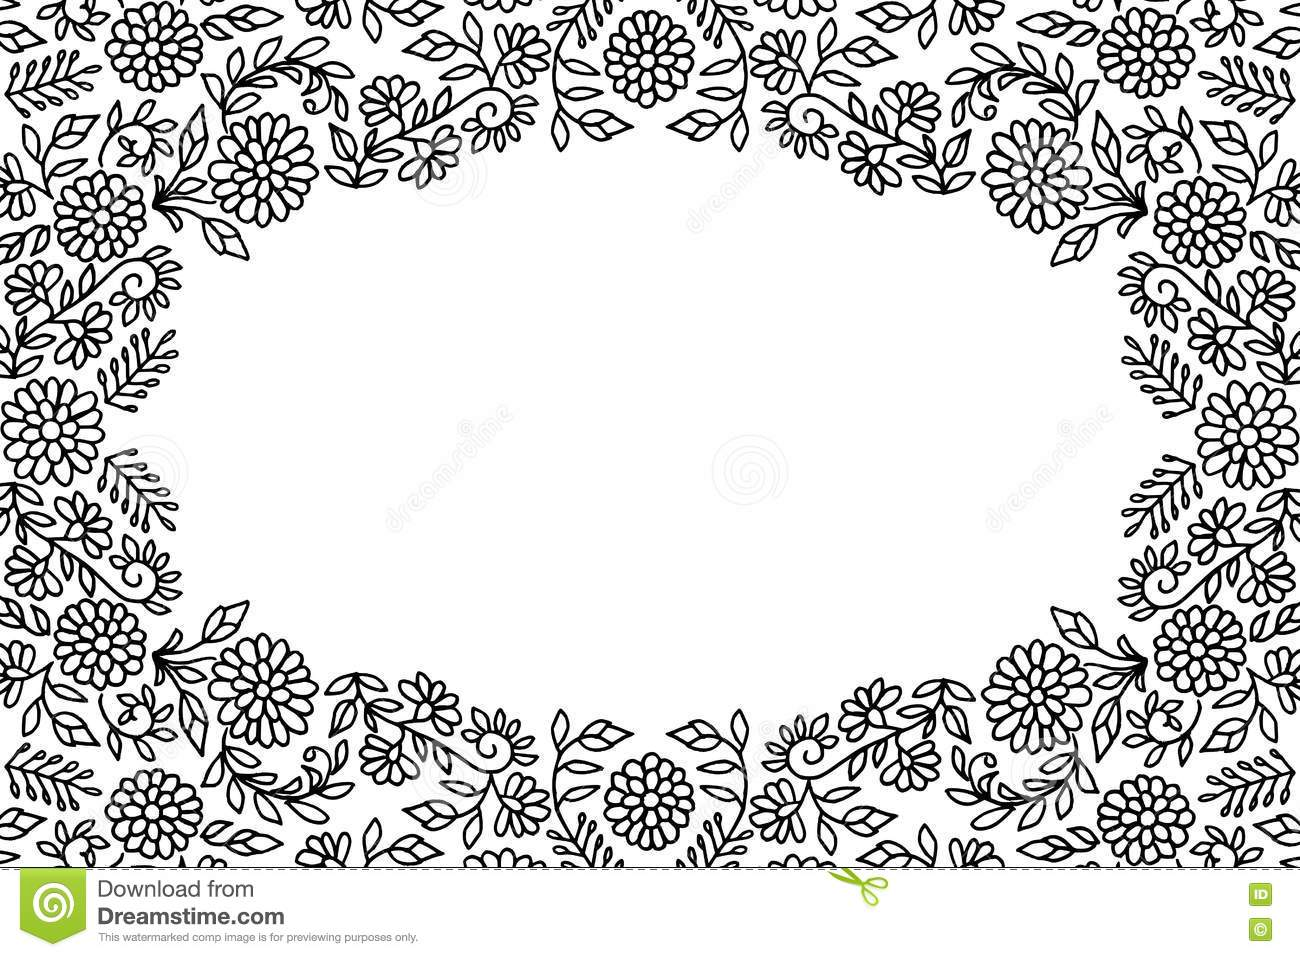 Embroidery flower frame stock vector image of drawing 80972492 embroidery flower frame bankloansurffo Images